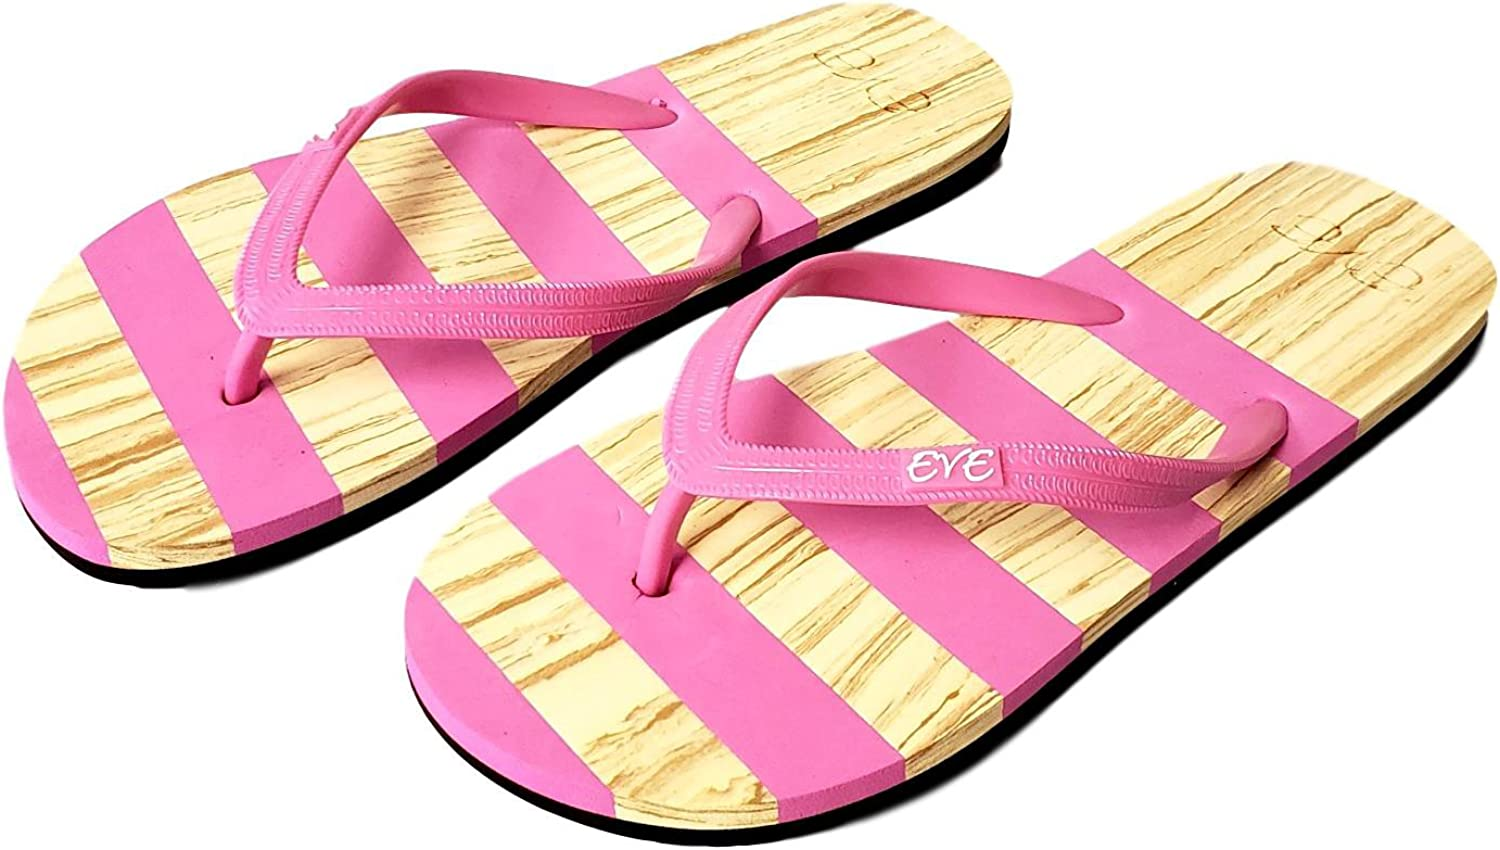 101 BEACH Comfortable Wood Look with Stripes Summer Flip Flops for Women